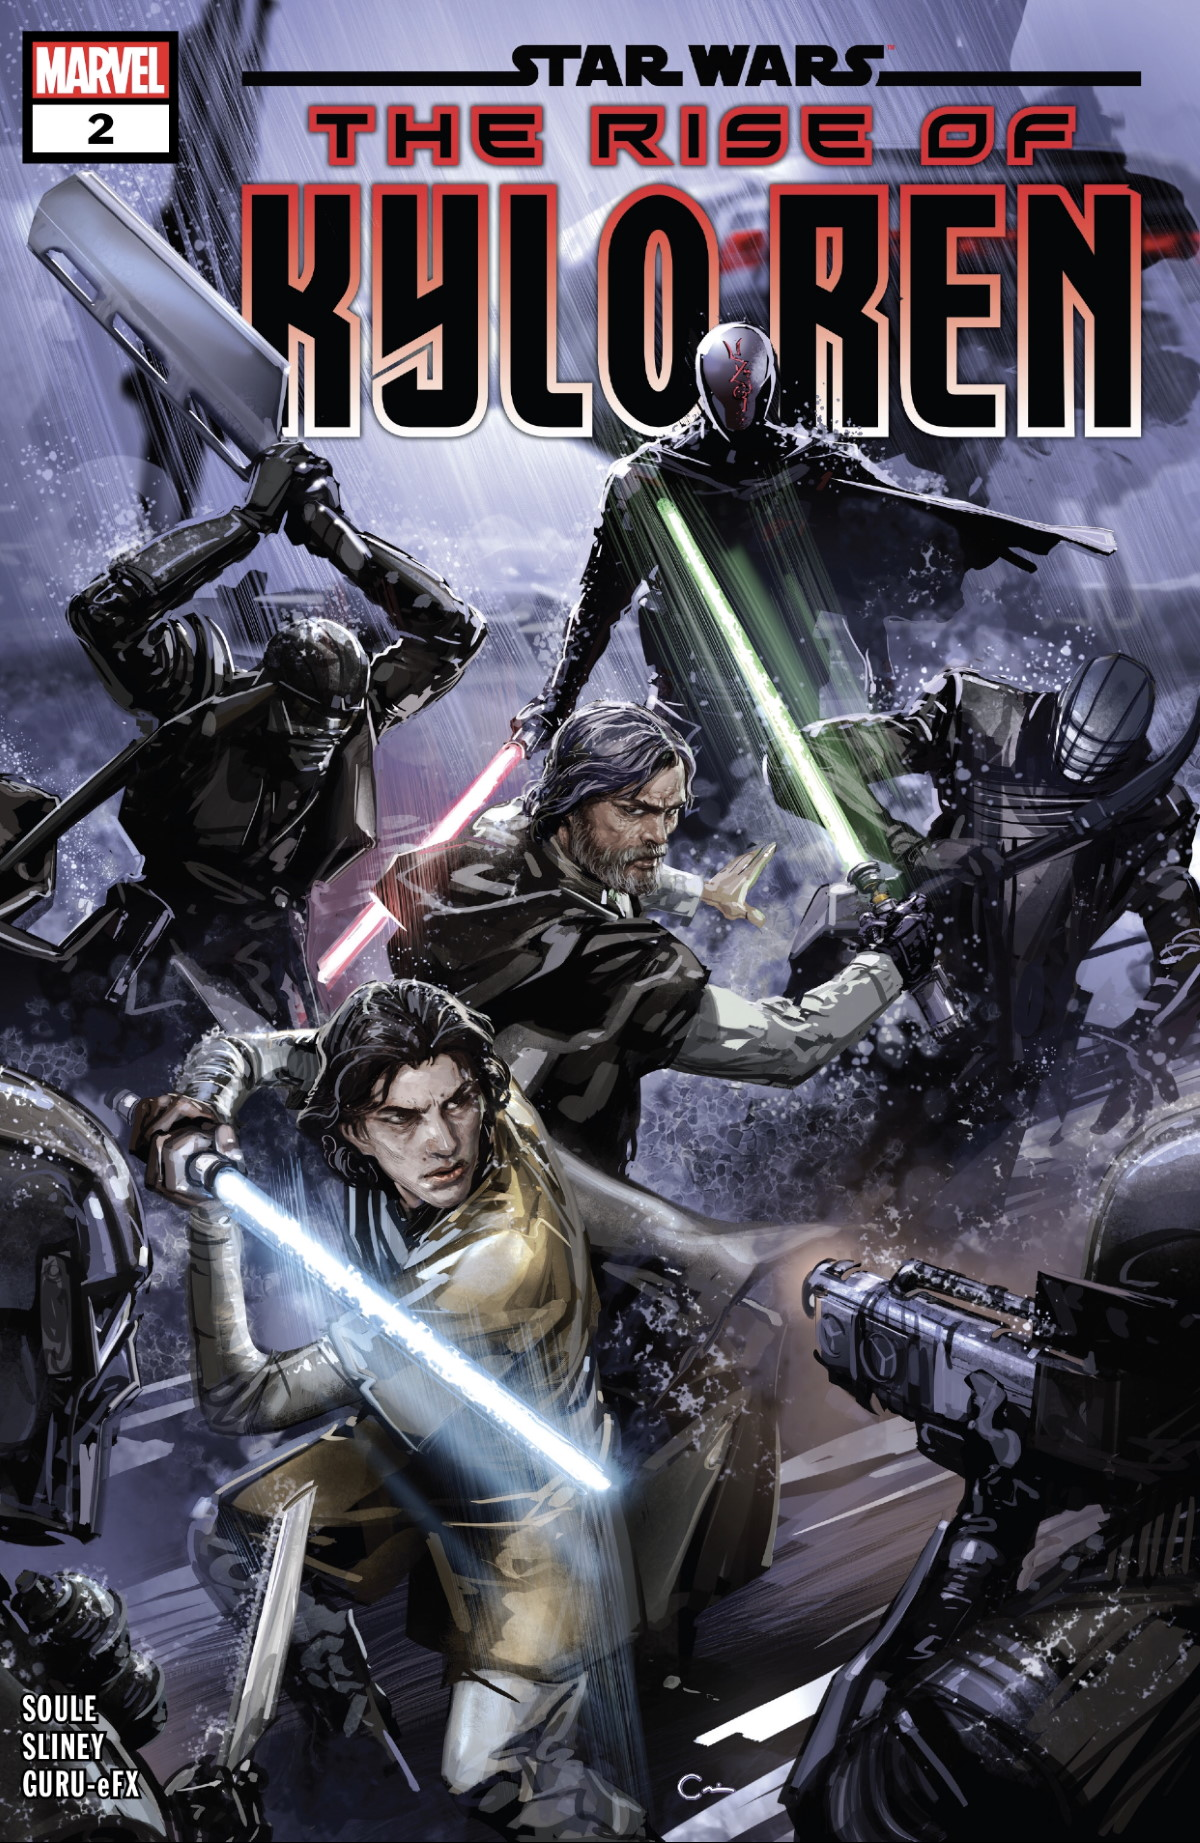 The Rise of Kylo Ren #2 Review - Star Wars Marvel